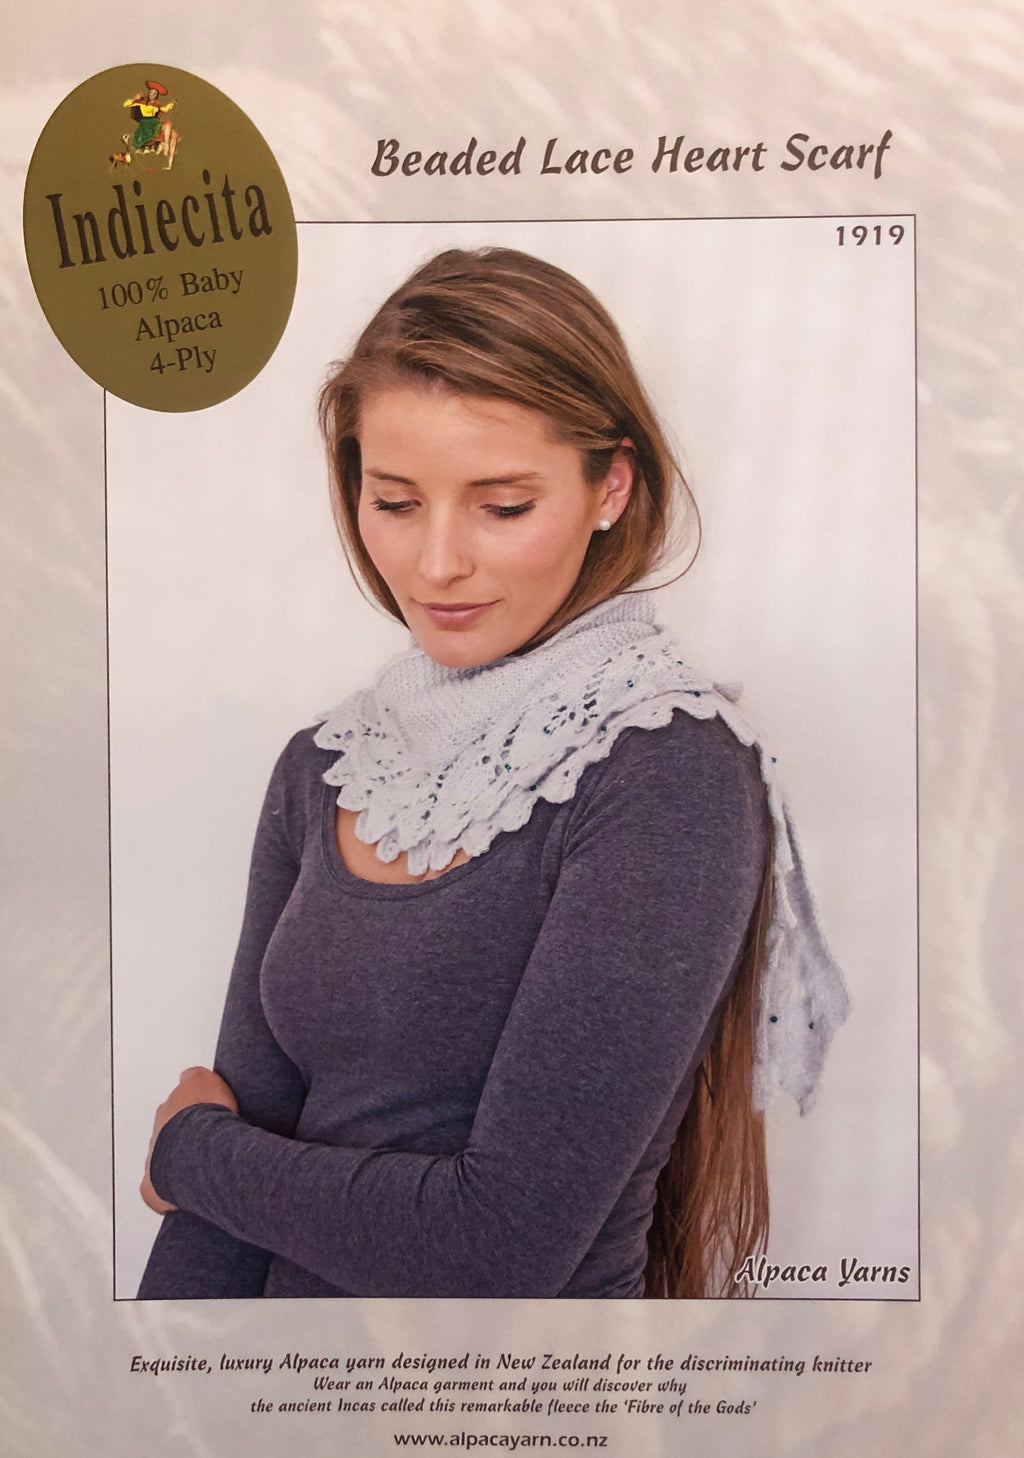 4 Ply Beaded Lace Heart Scarf - Pattern - 1919 - The Mulberry Tree at Milton